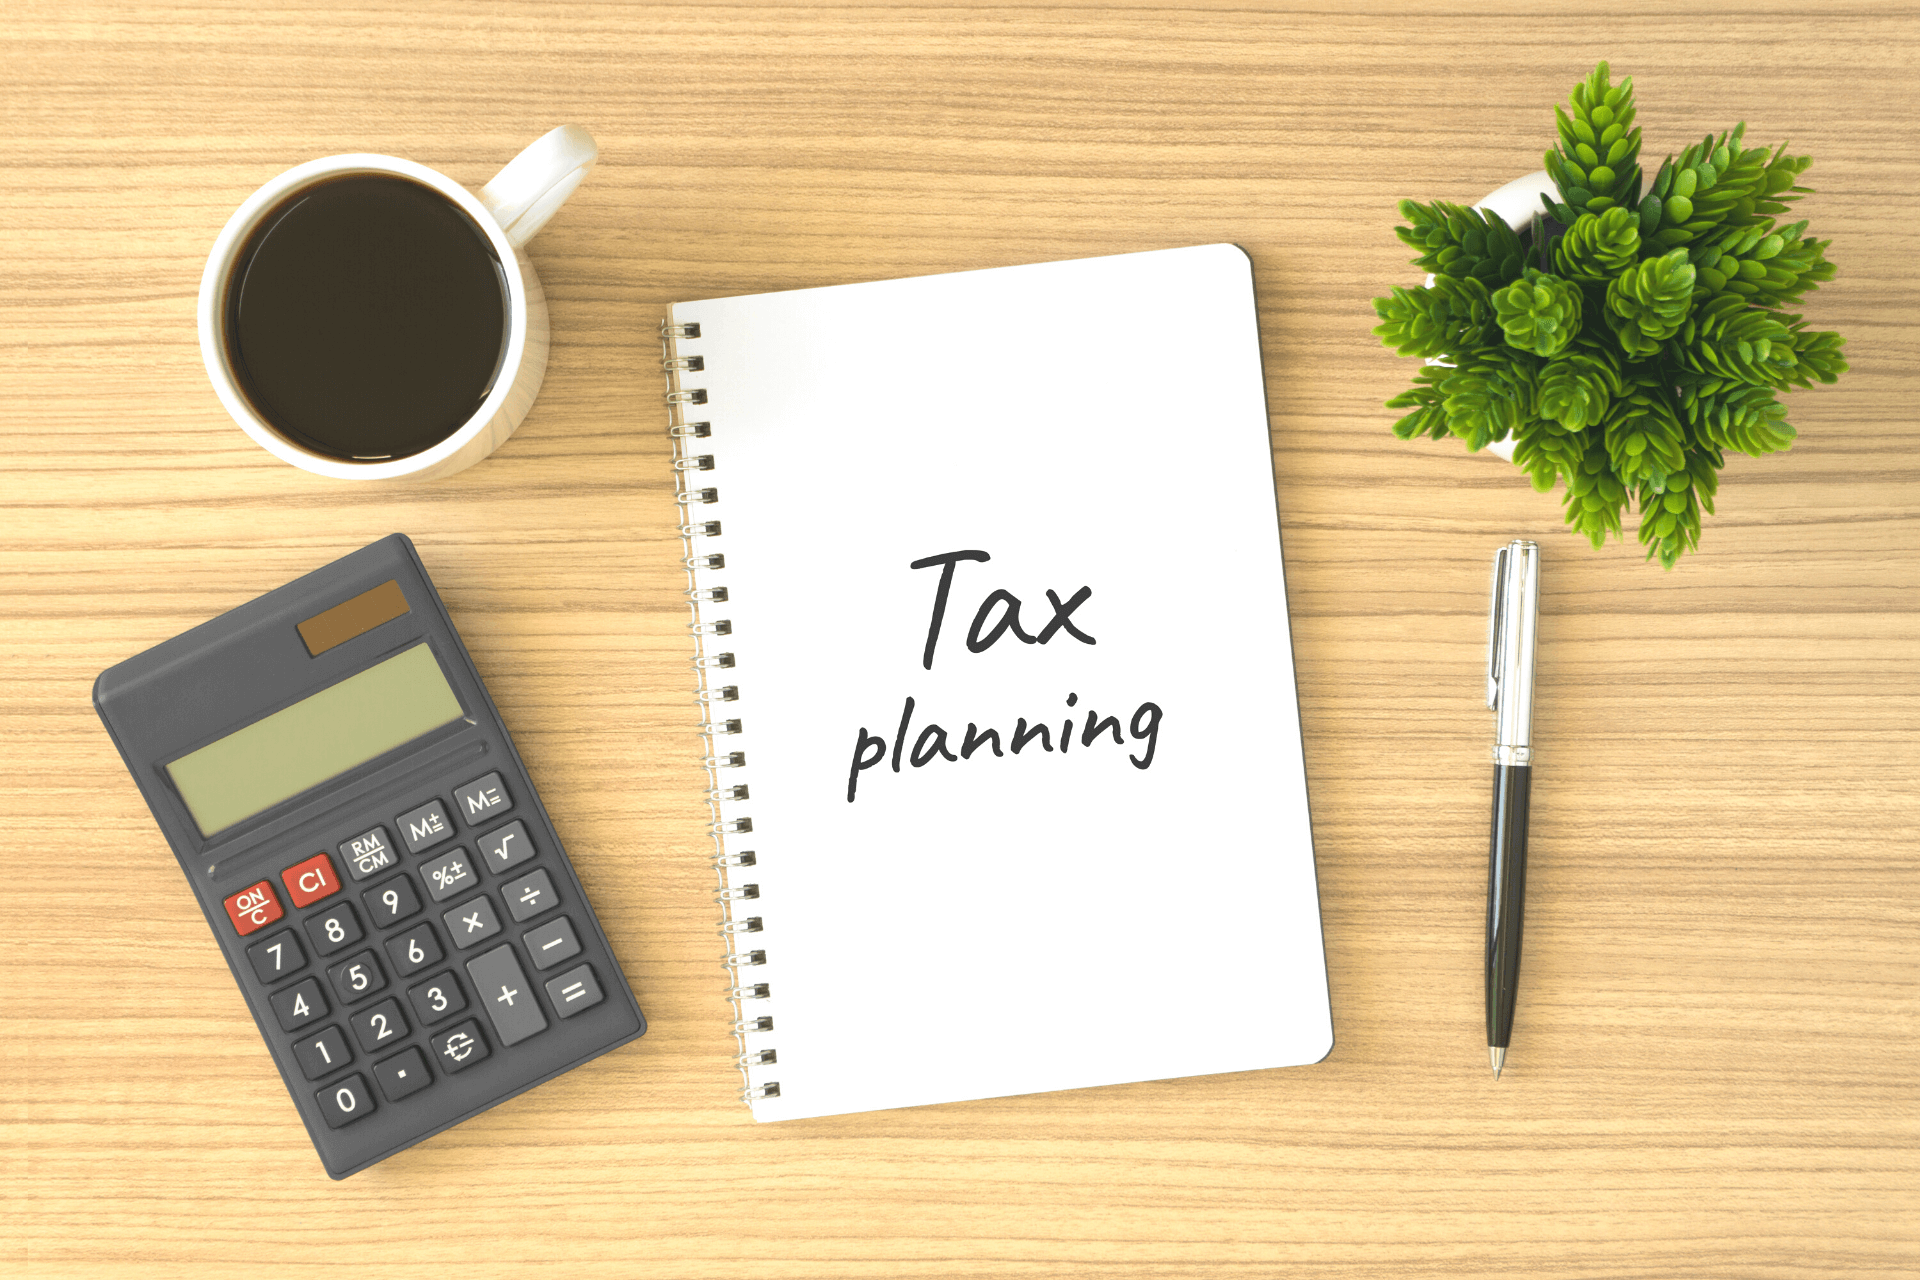 Should I Pay Income Tax in Installment or Lump Sum?